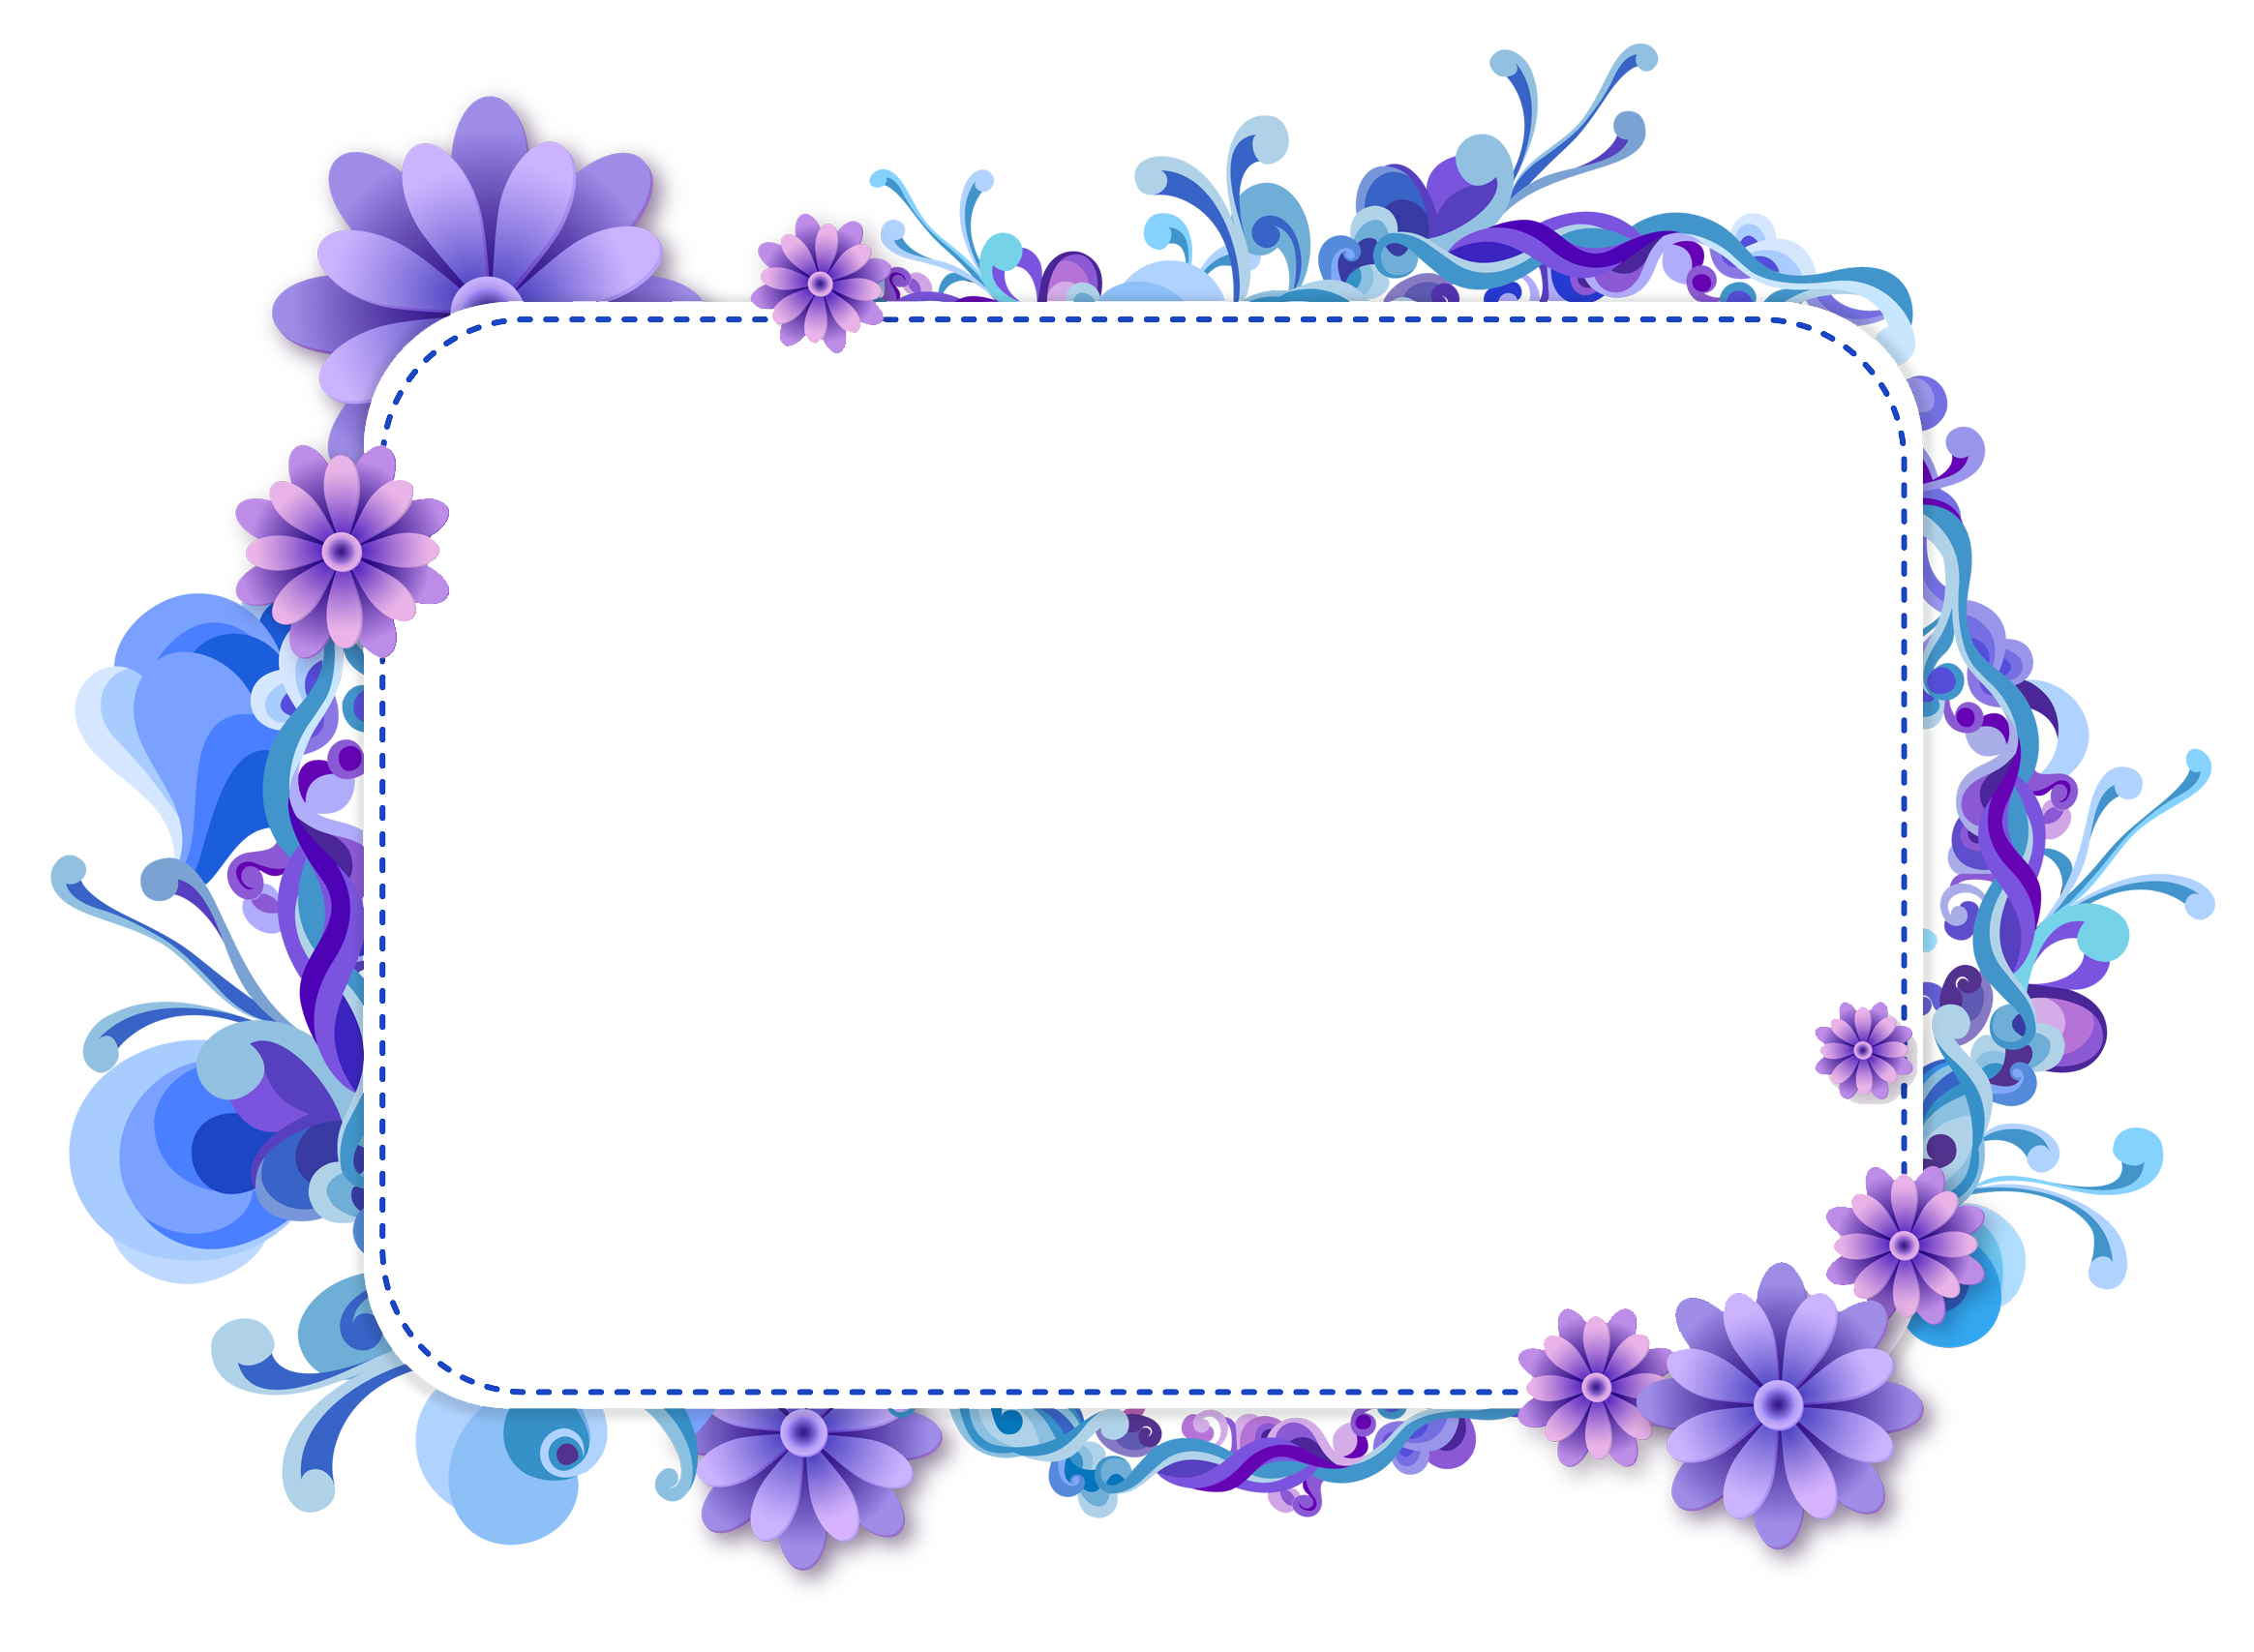 Blue flower border clipart clipart download Picture Frames Clip art - blue flower border 2329*1707 transprent ... clipart download